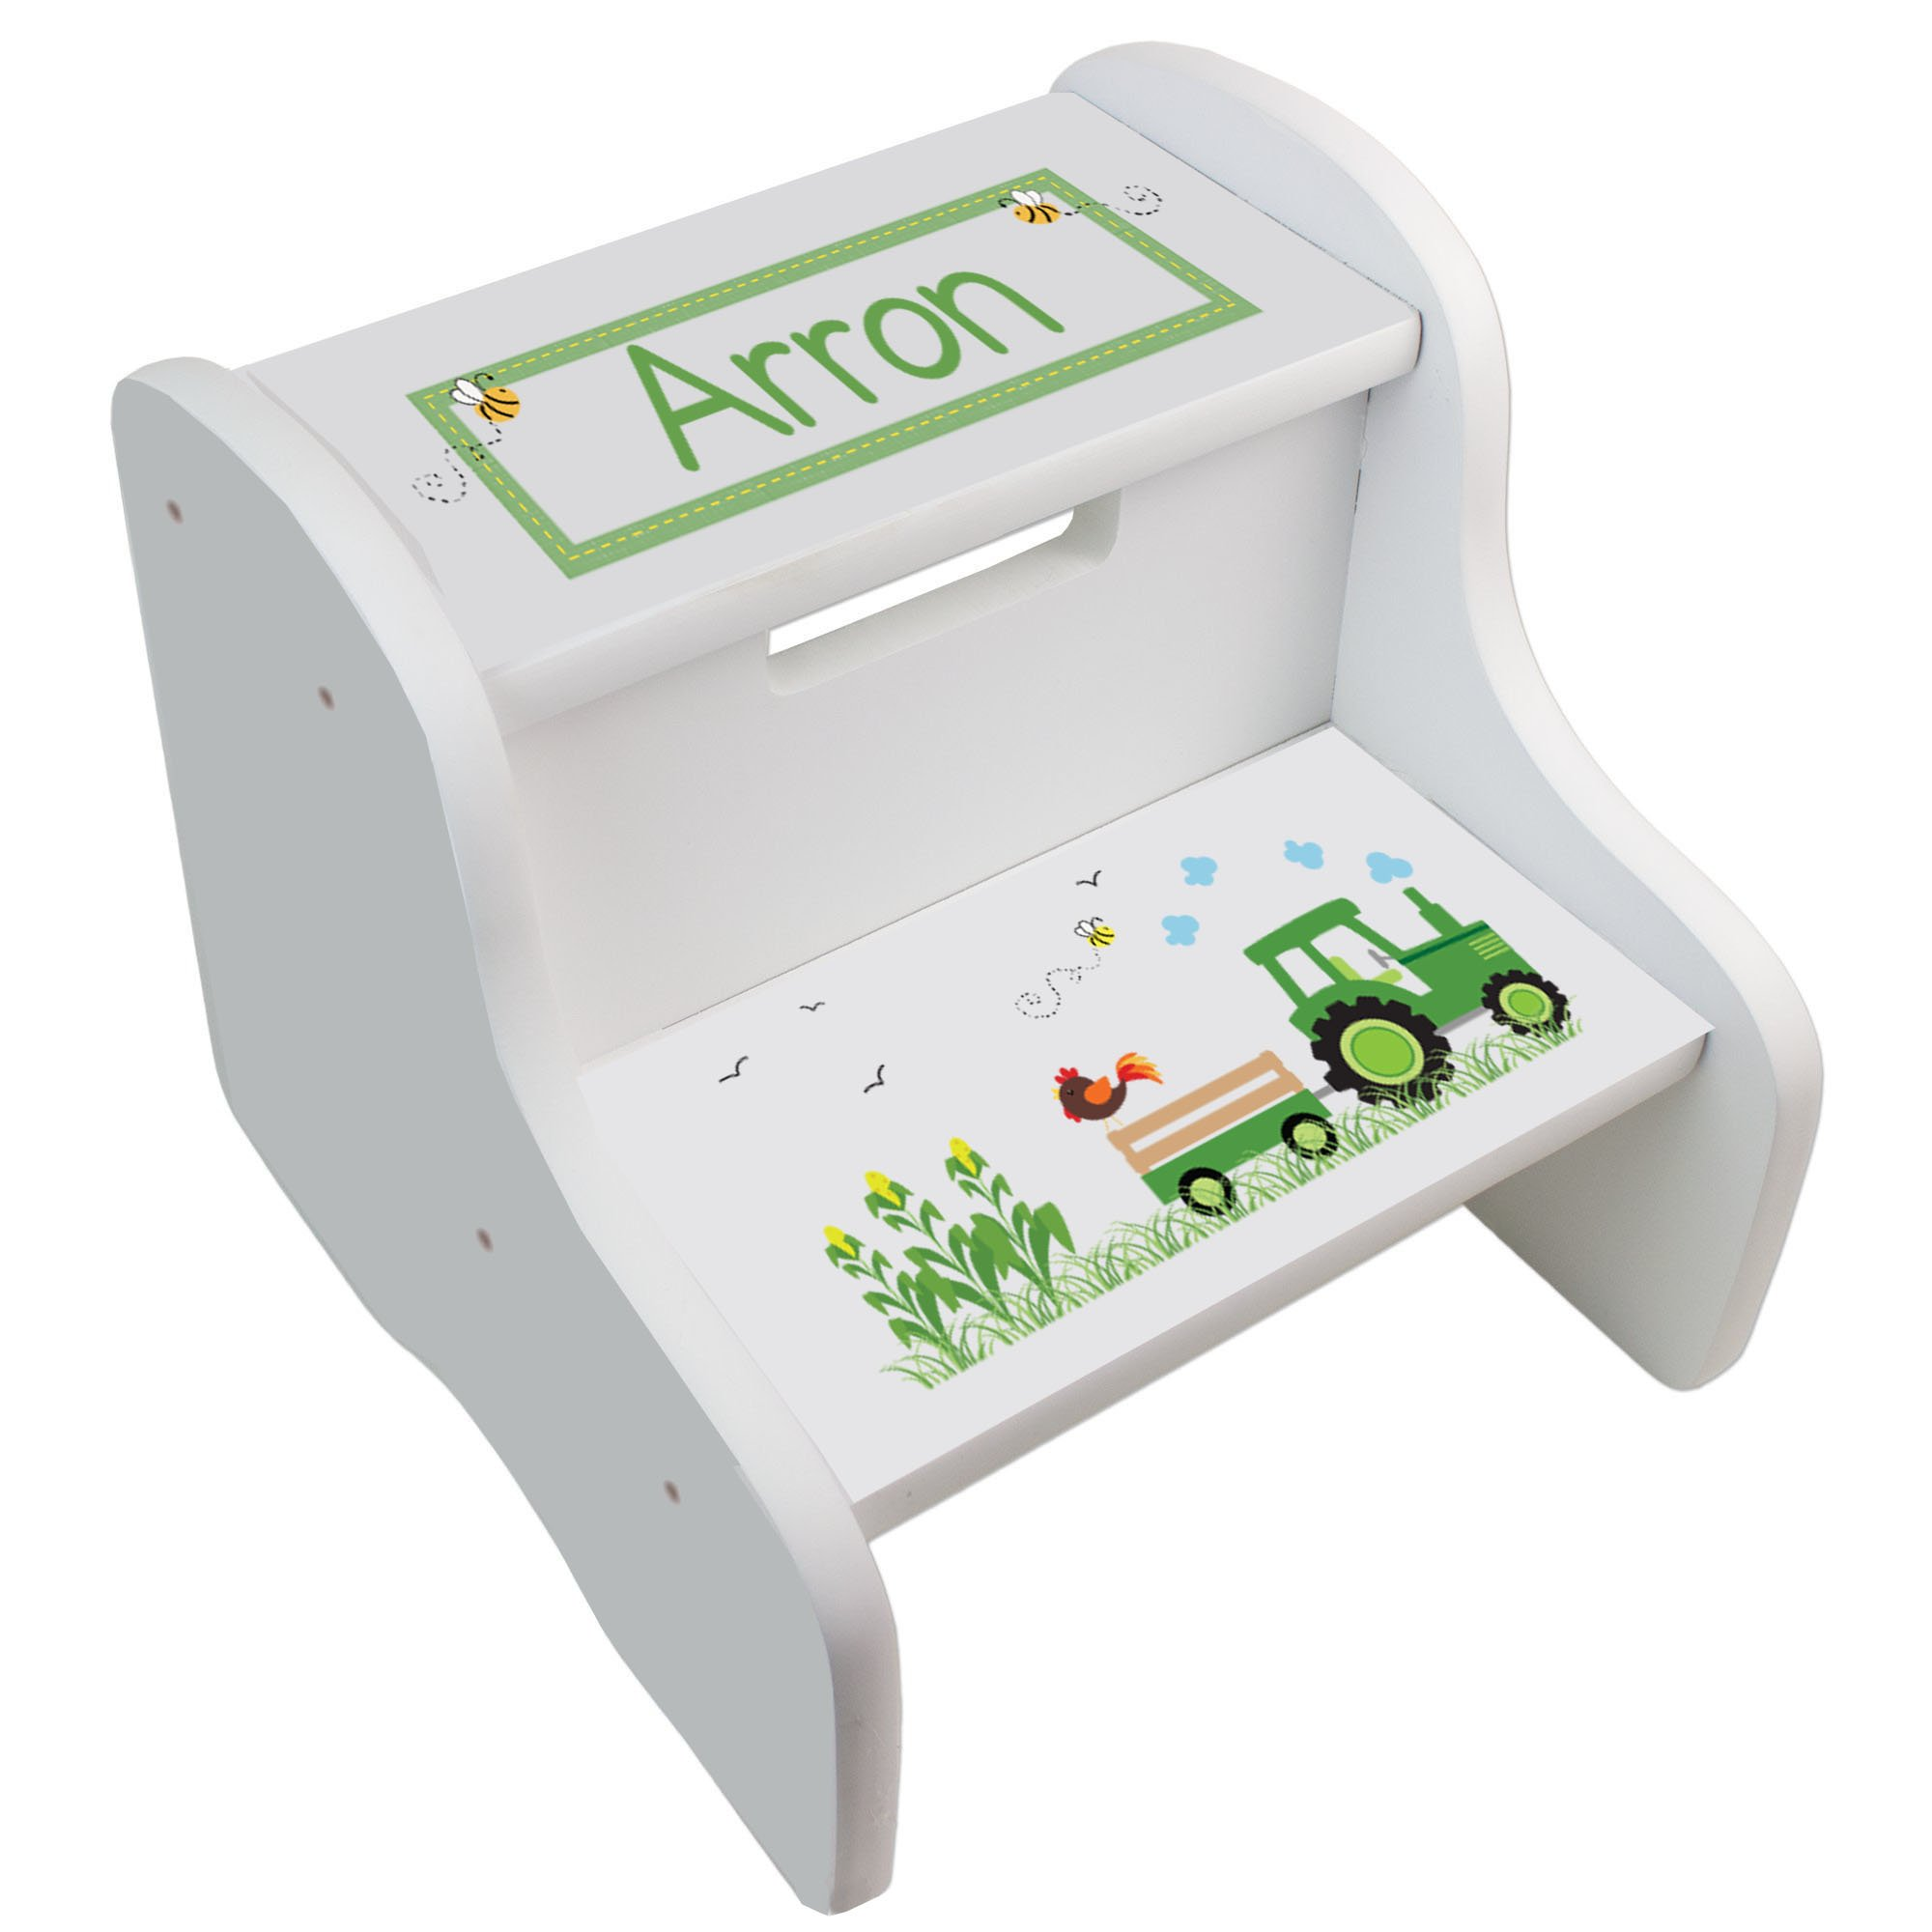 Personalized Green Tractor White Step Stool by MyBambino (Image #1)